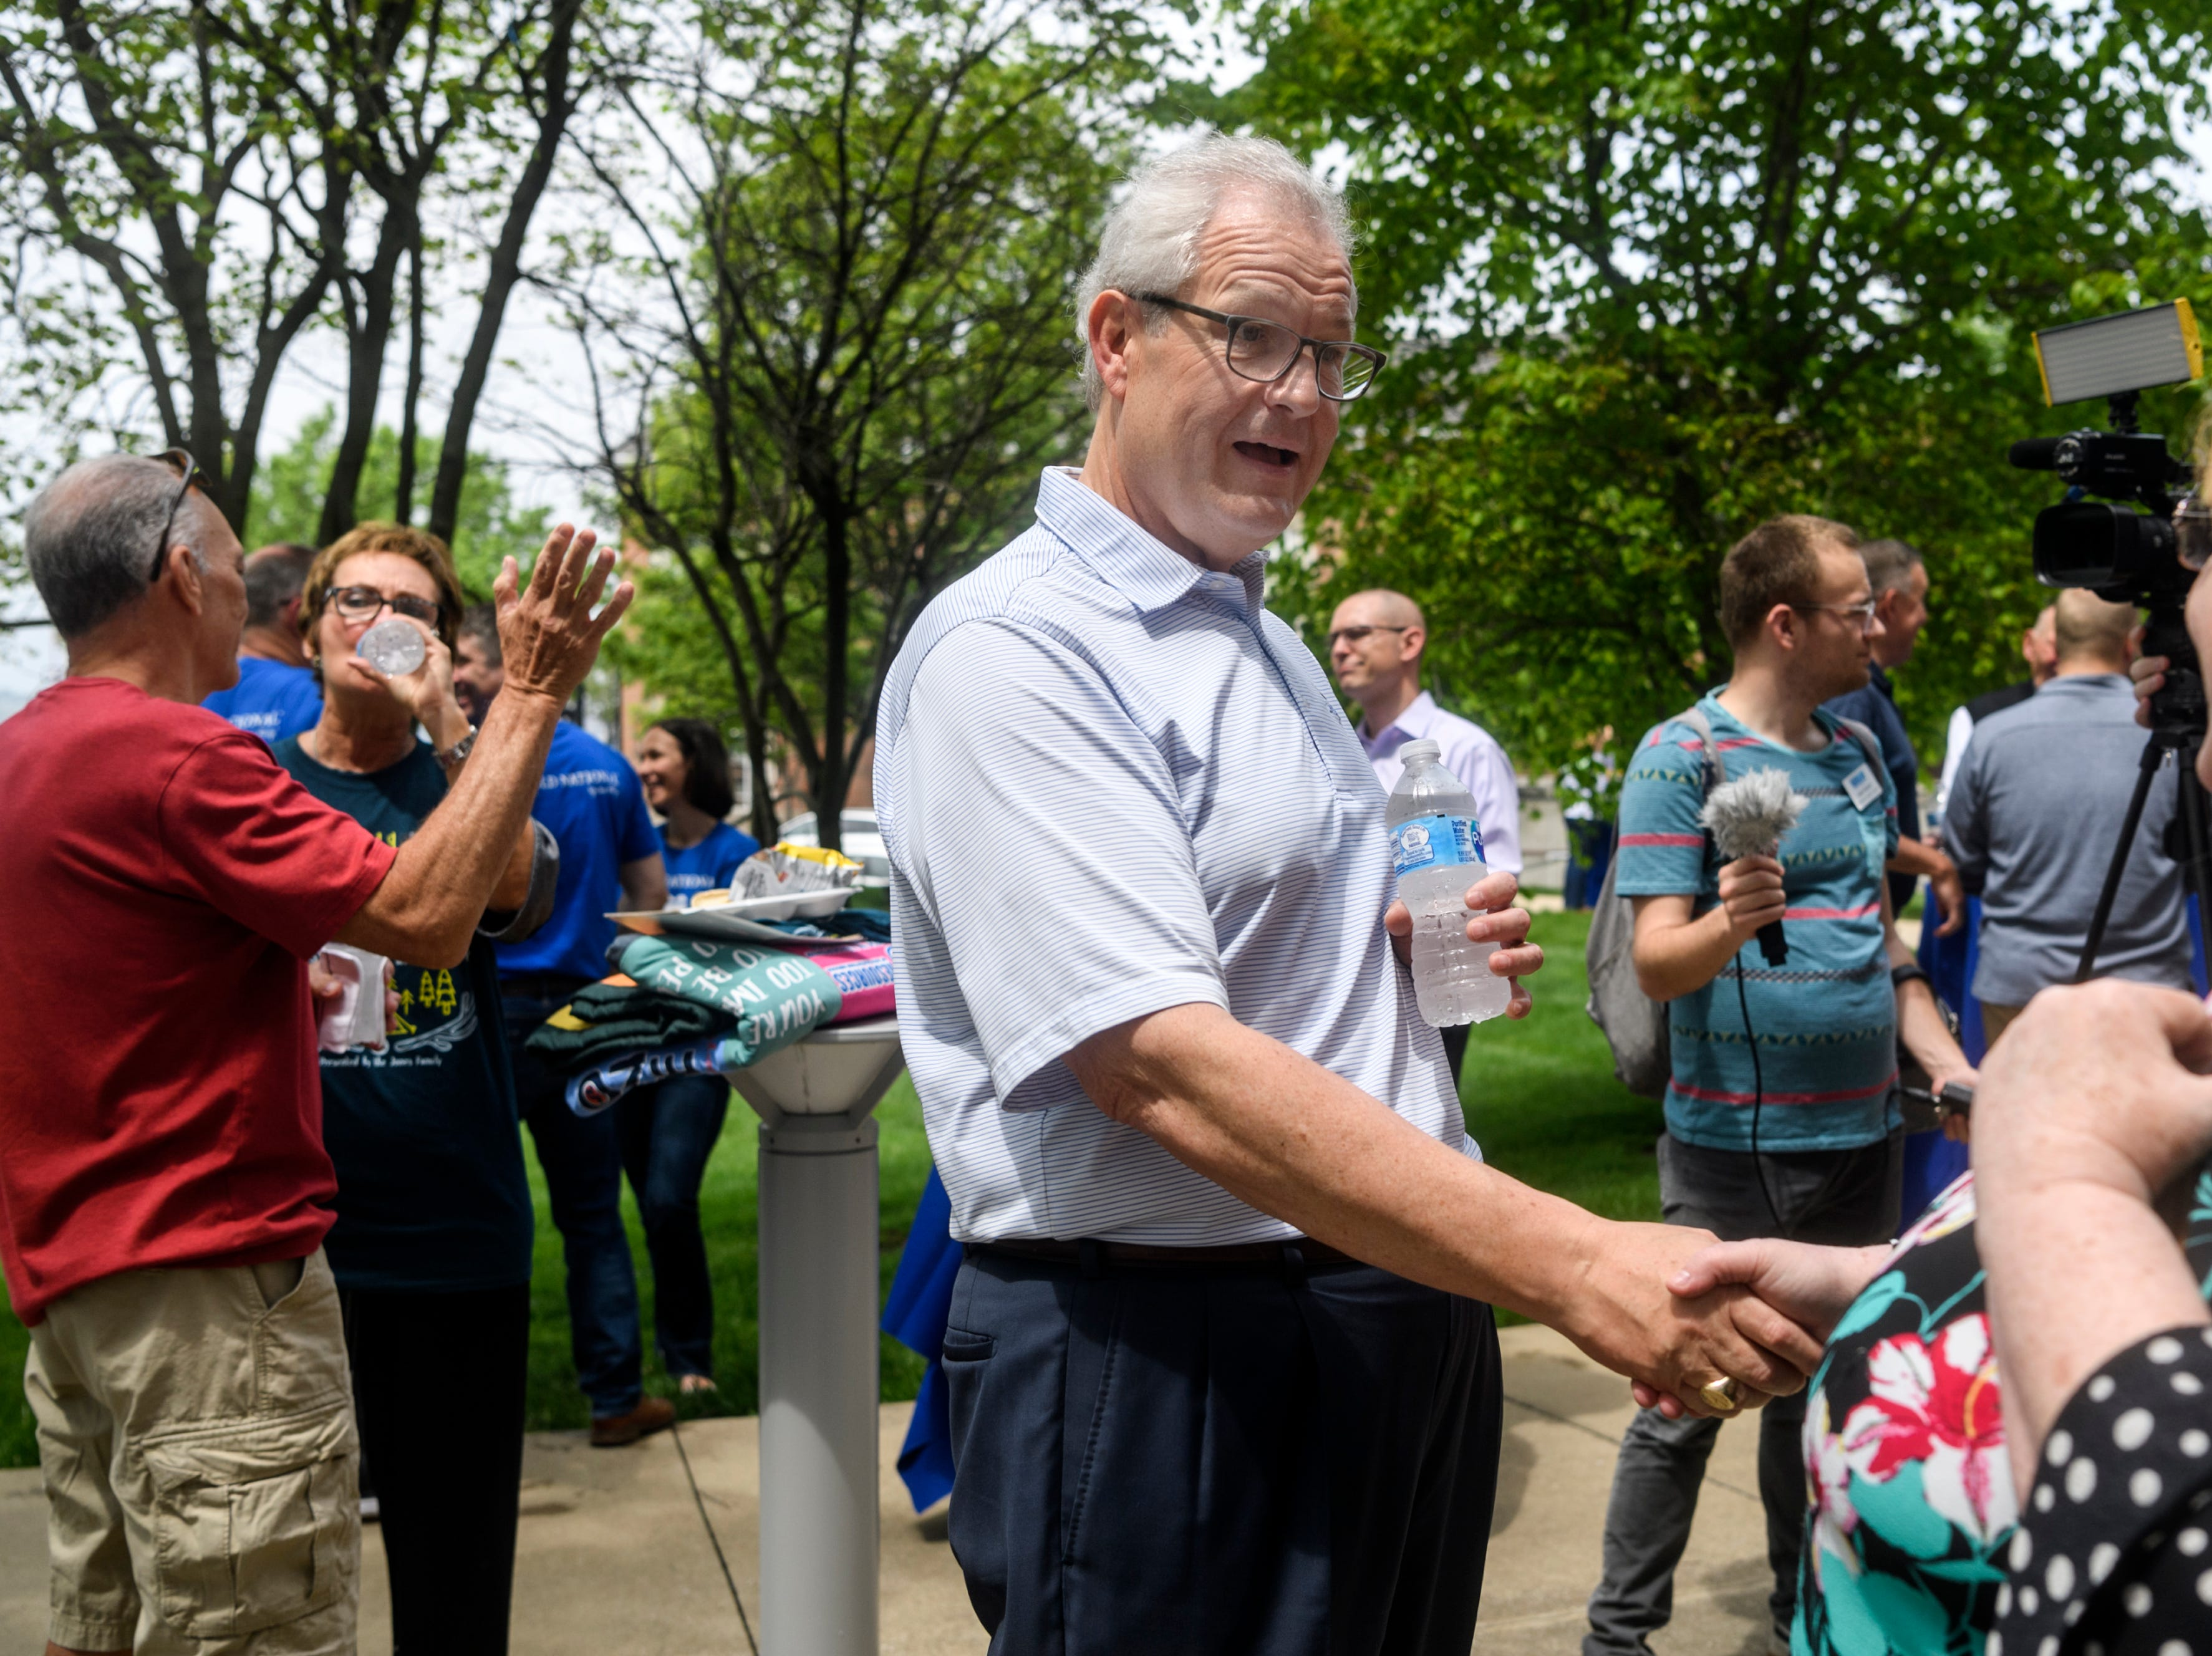 Bob Jones, center, the retiring Old National Bank chief executive officer, receives a long line of congratulations from people attending his farewell party outside of Old National Bank's headquarters in downtown Evansville, Ind., Friday, May 3, 2019.